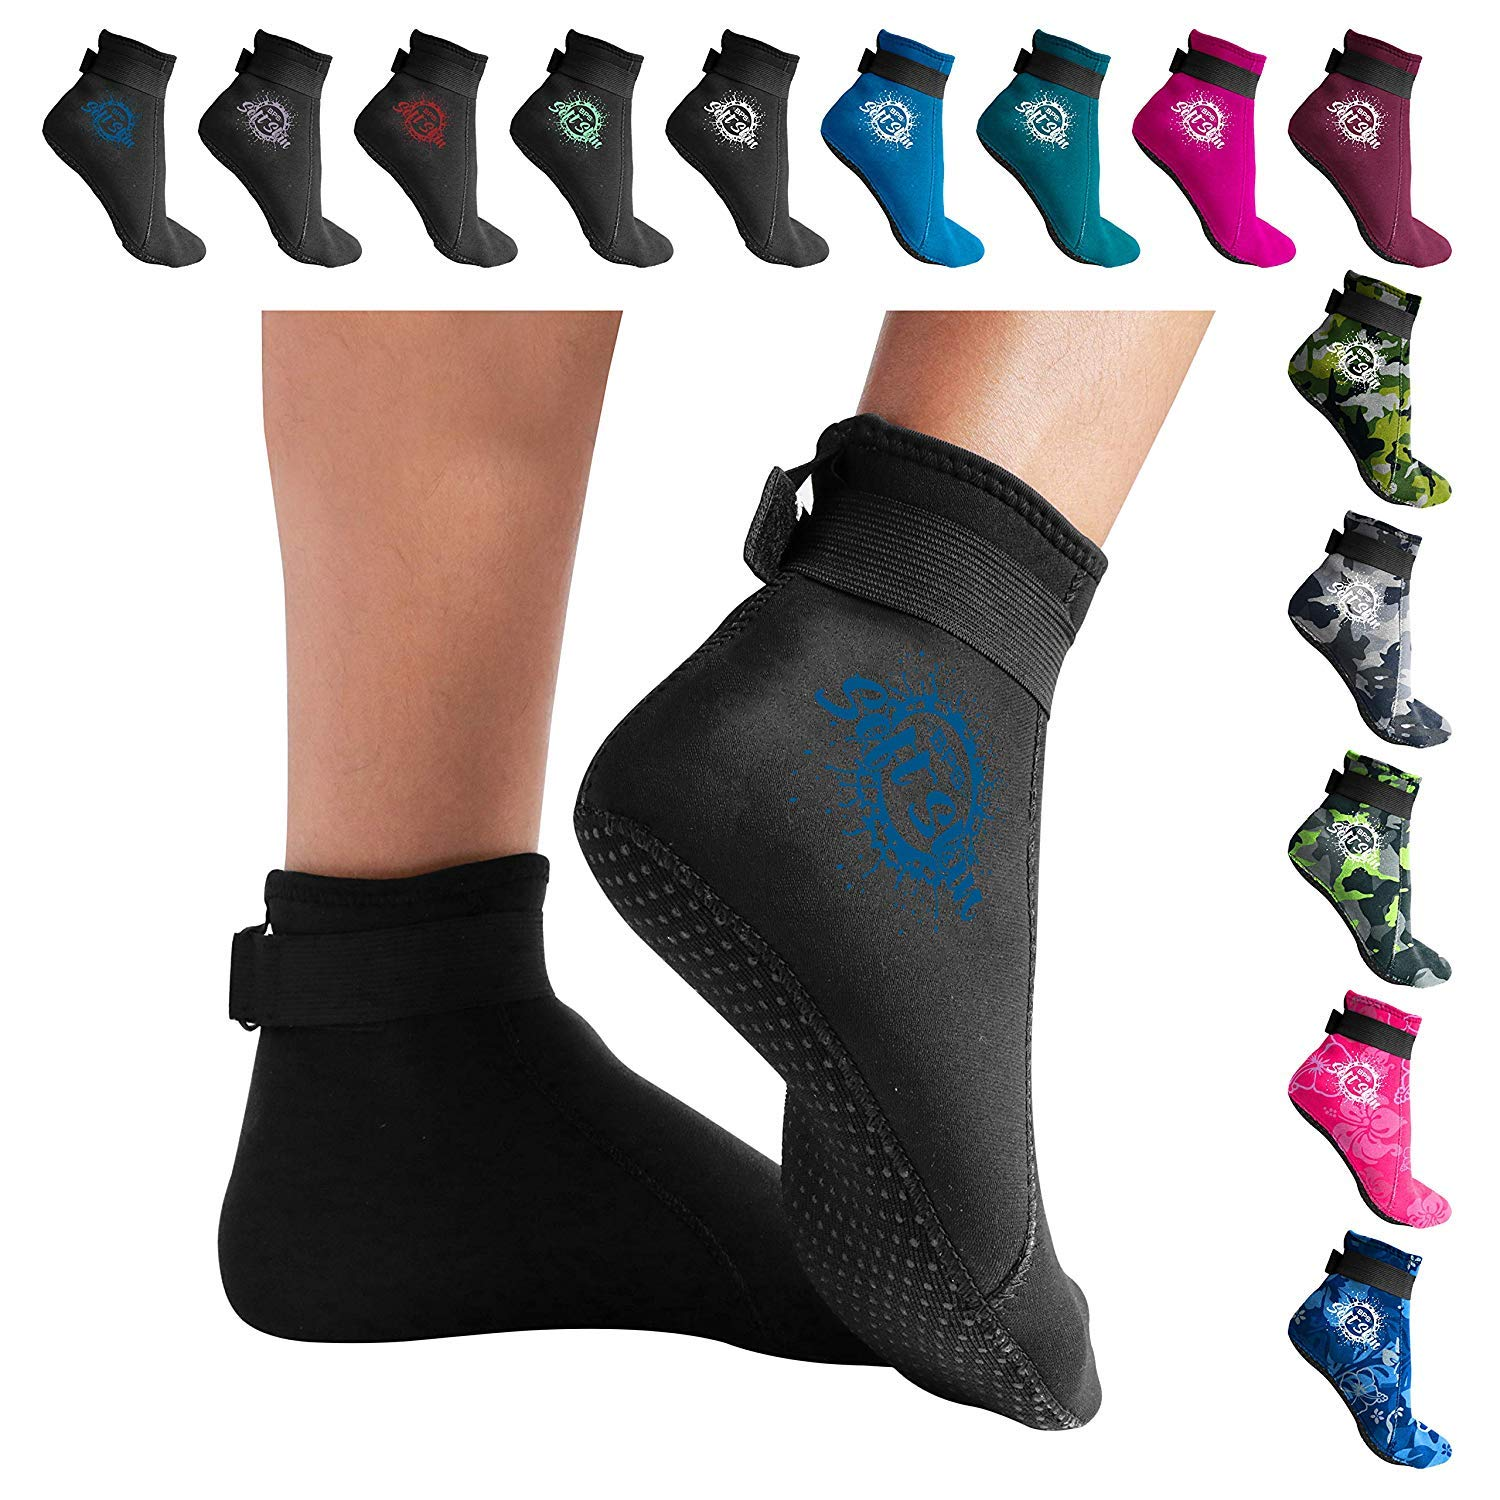 BPS 'Soft Skin' 3mm Neoprene Water Fin Socks w/Grip for Men and Women - Feet Cover for Beach Volleyball, Surfing, Snorkeling, Diving, Kayaking - Low Cut (Black/Snorkel Blue, XS)